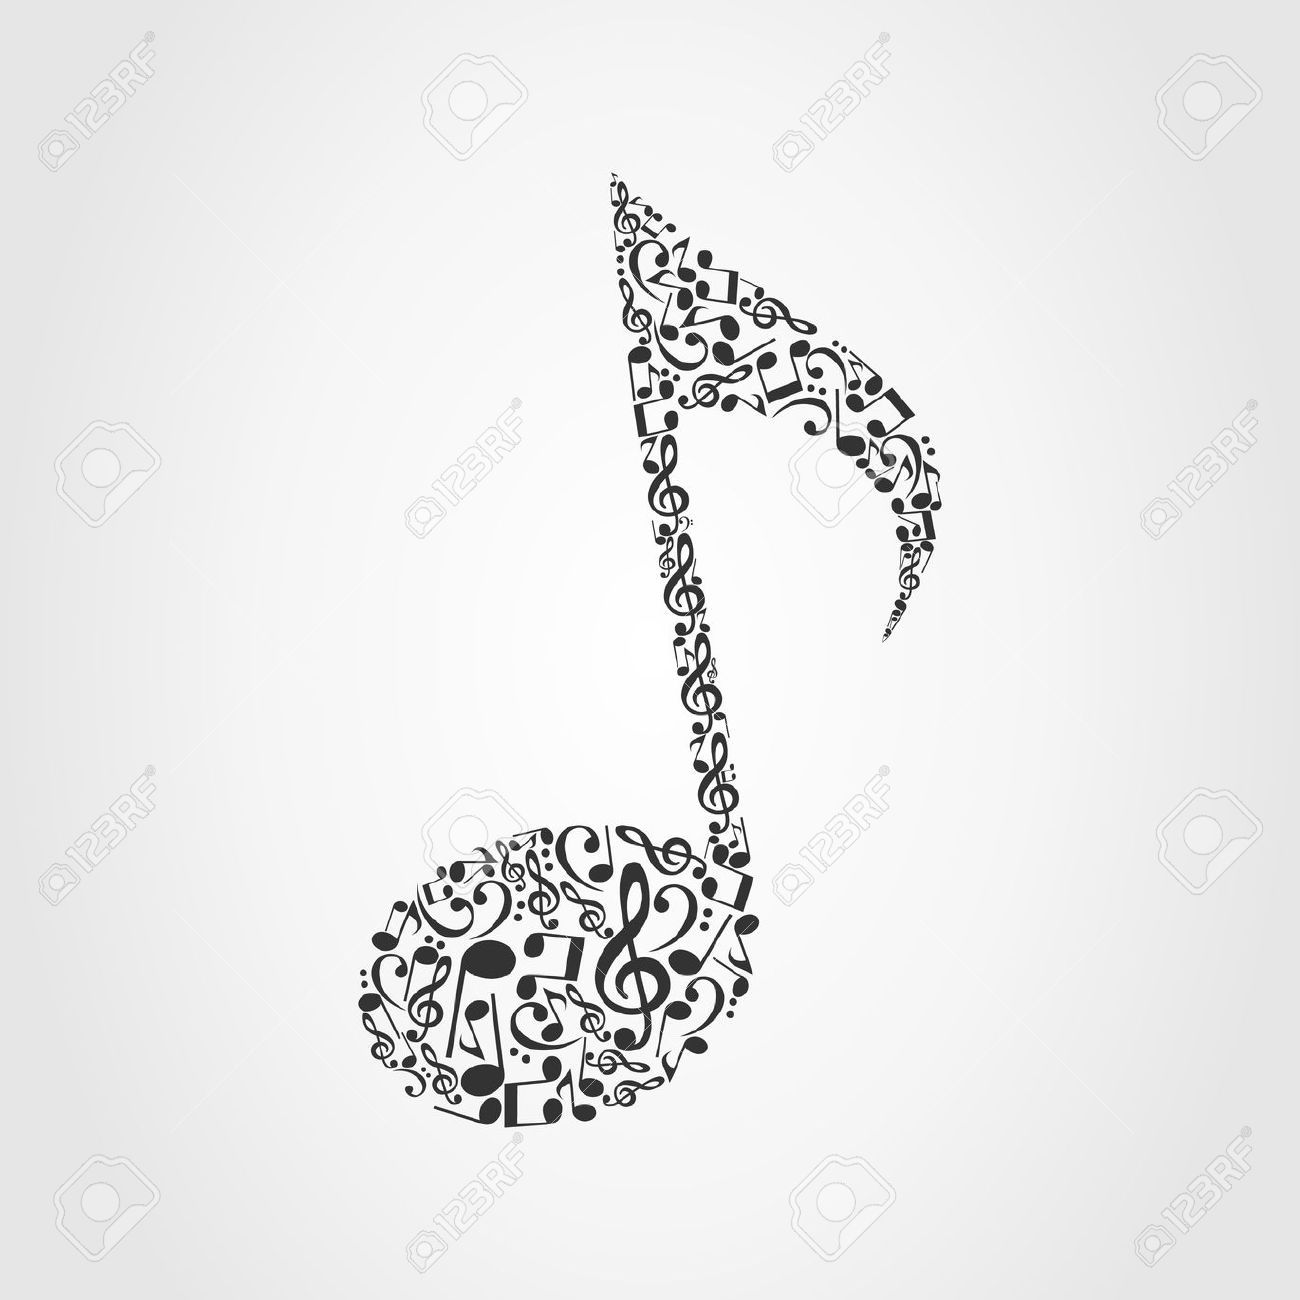 Music Note Stock Photos Images Royalty Free